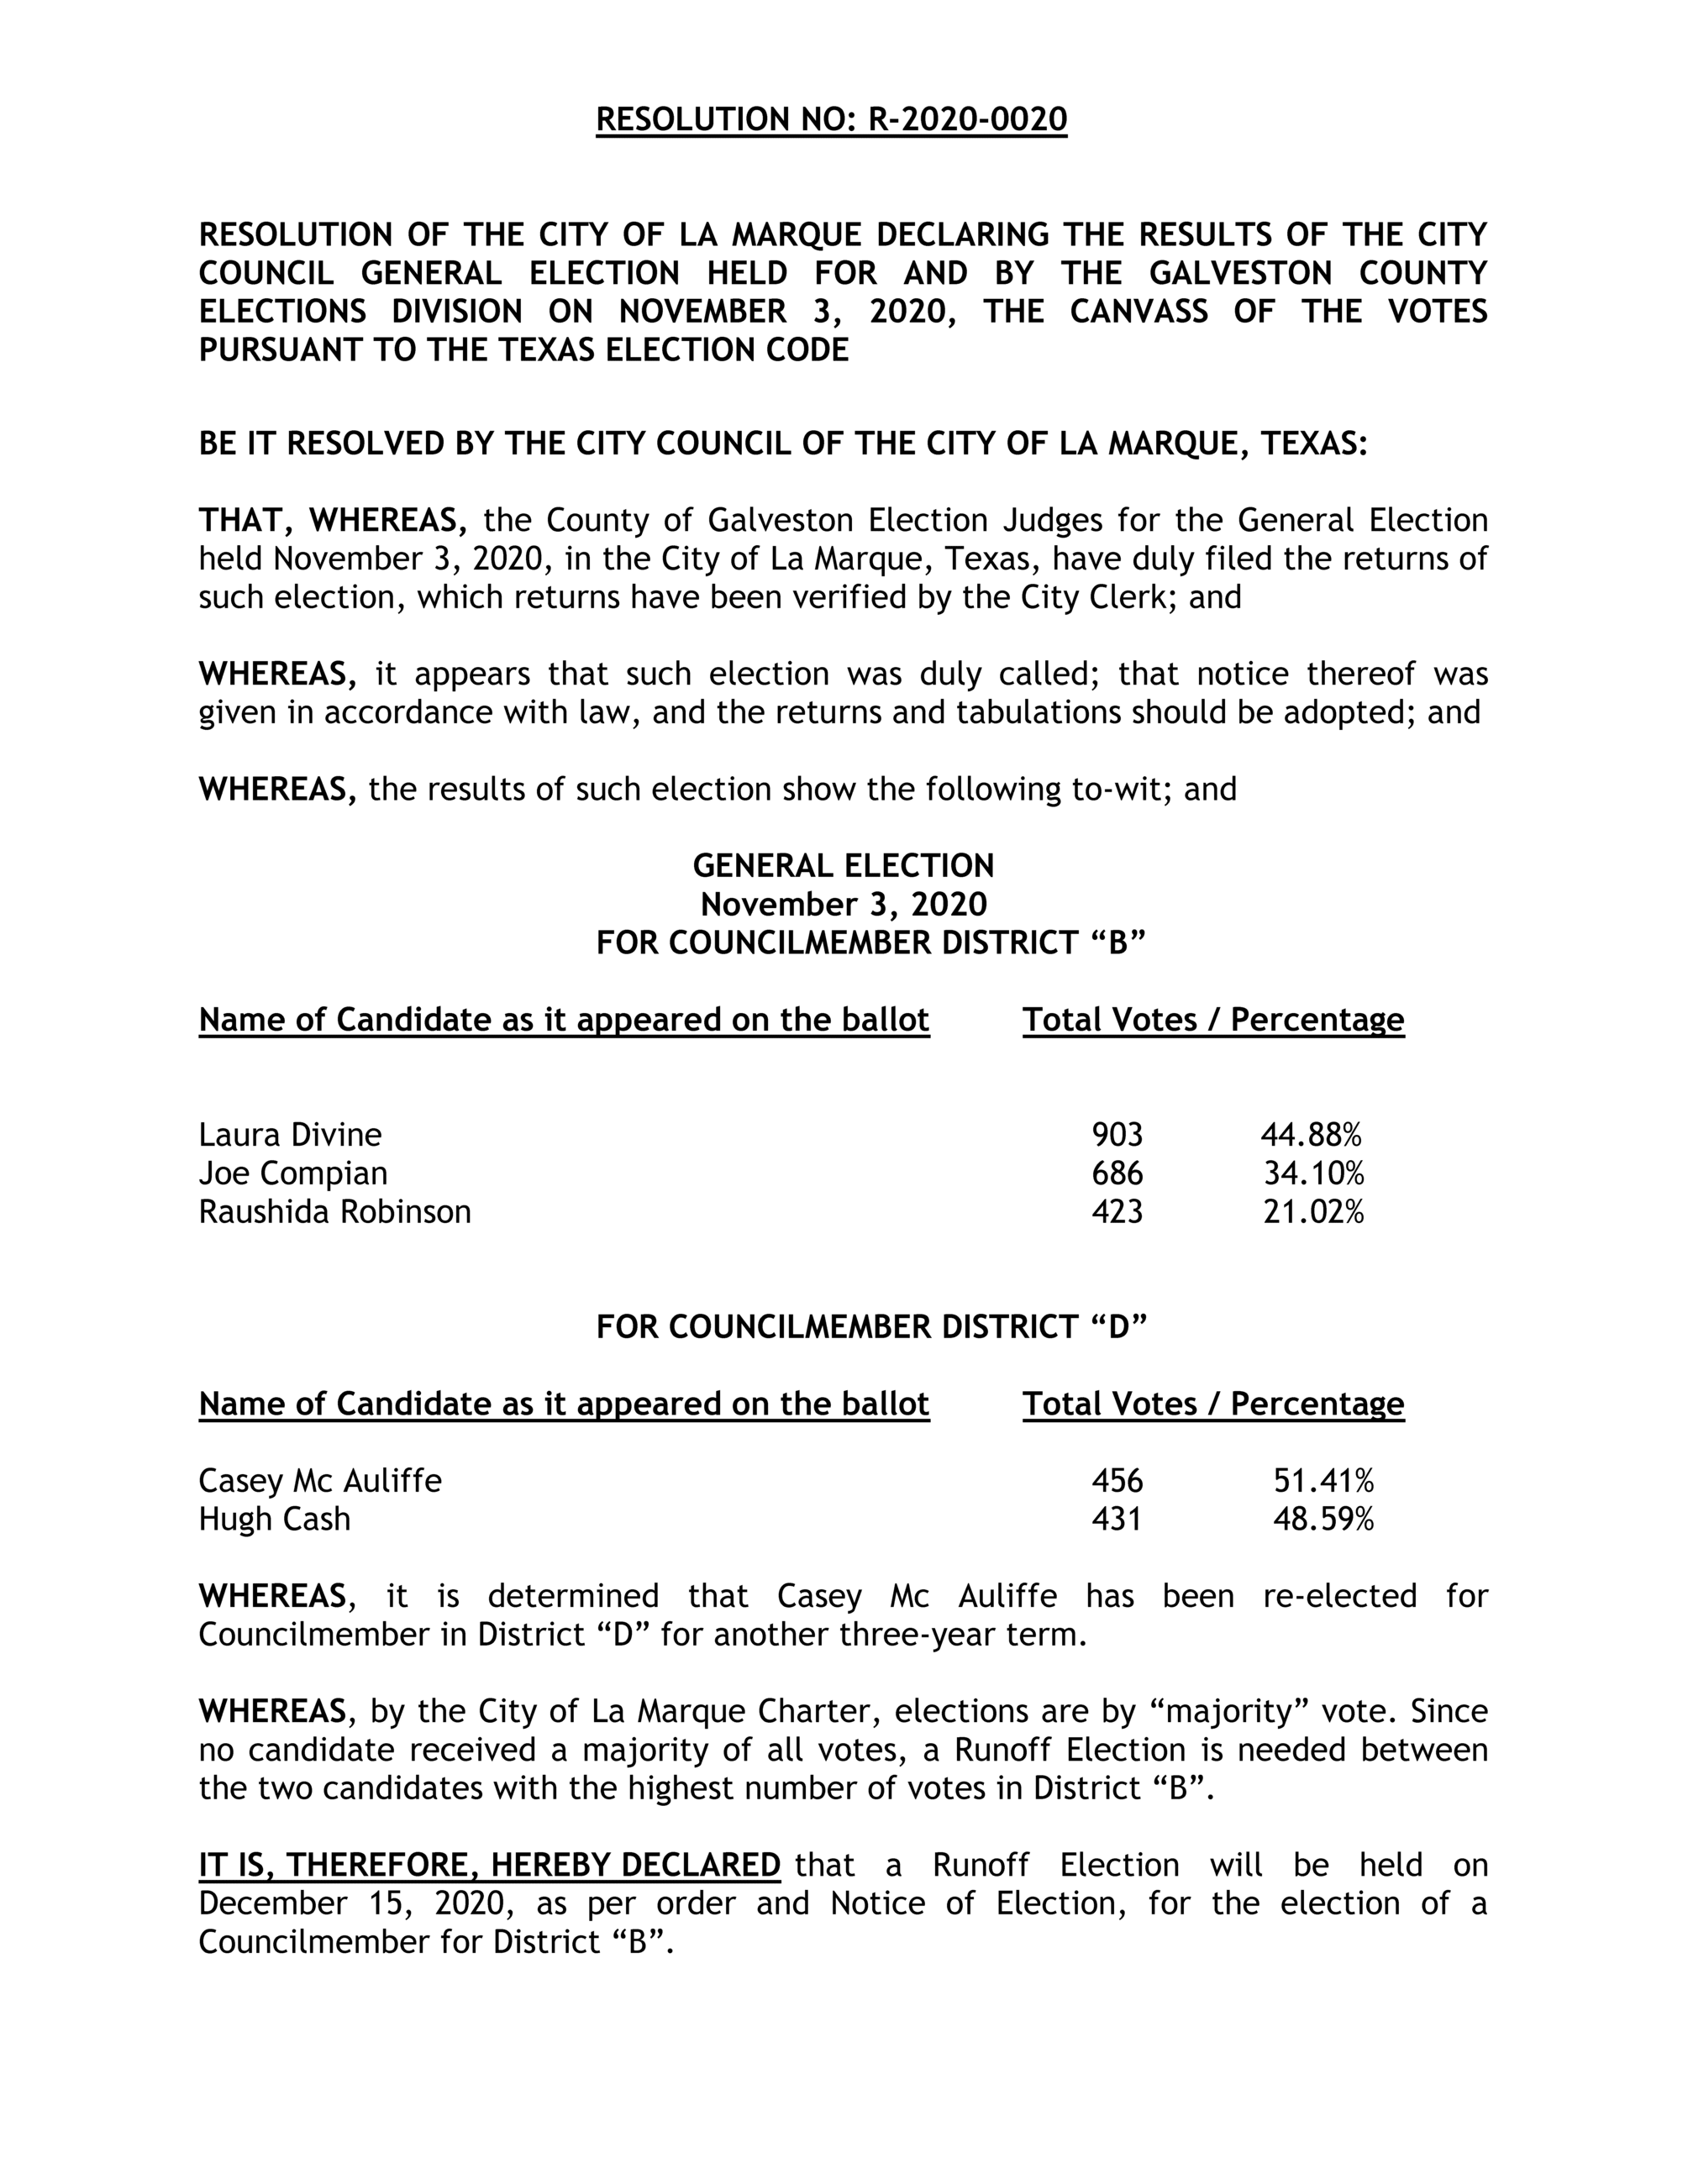 Election Results_Resolution No. R-2020-0020_Page_1